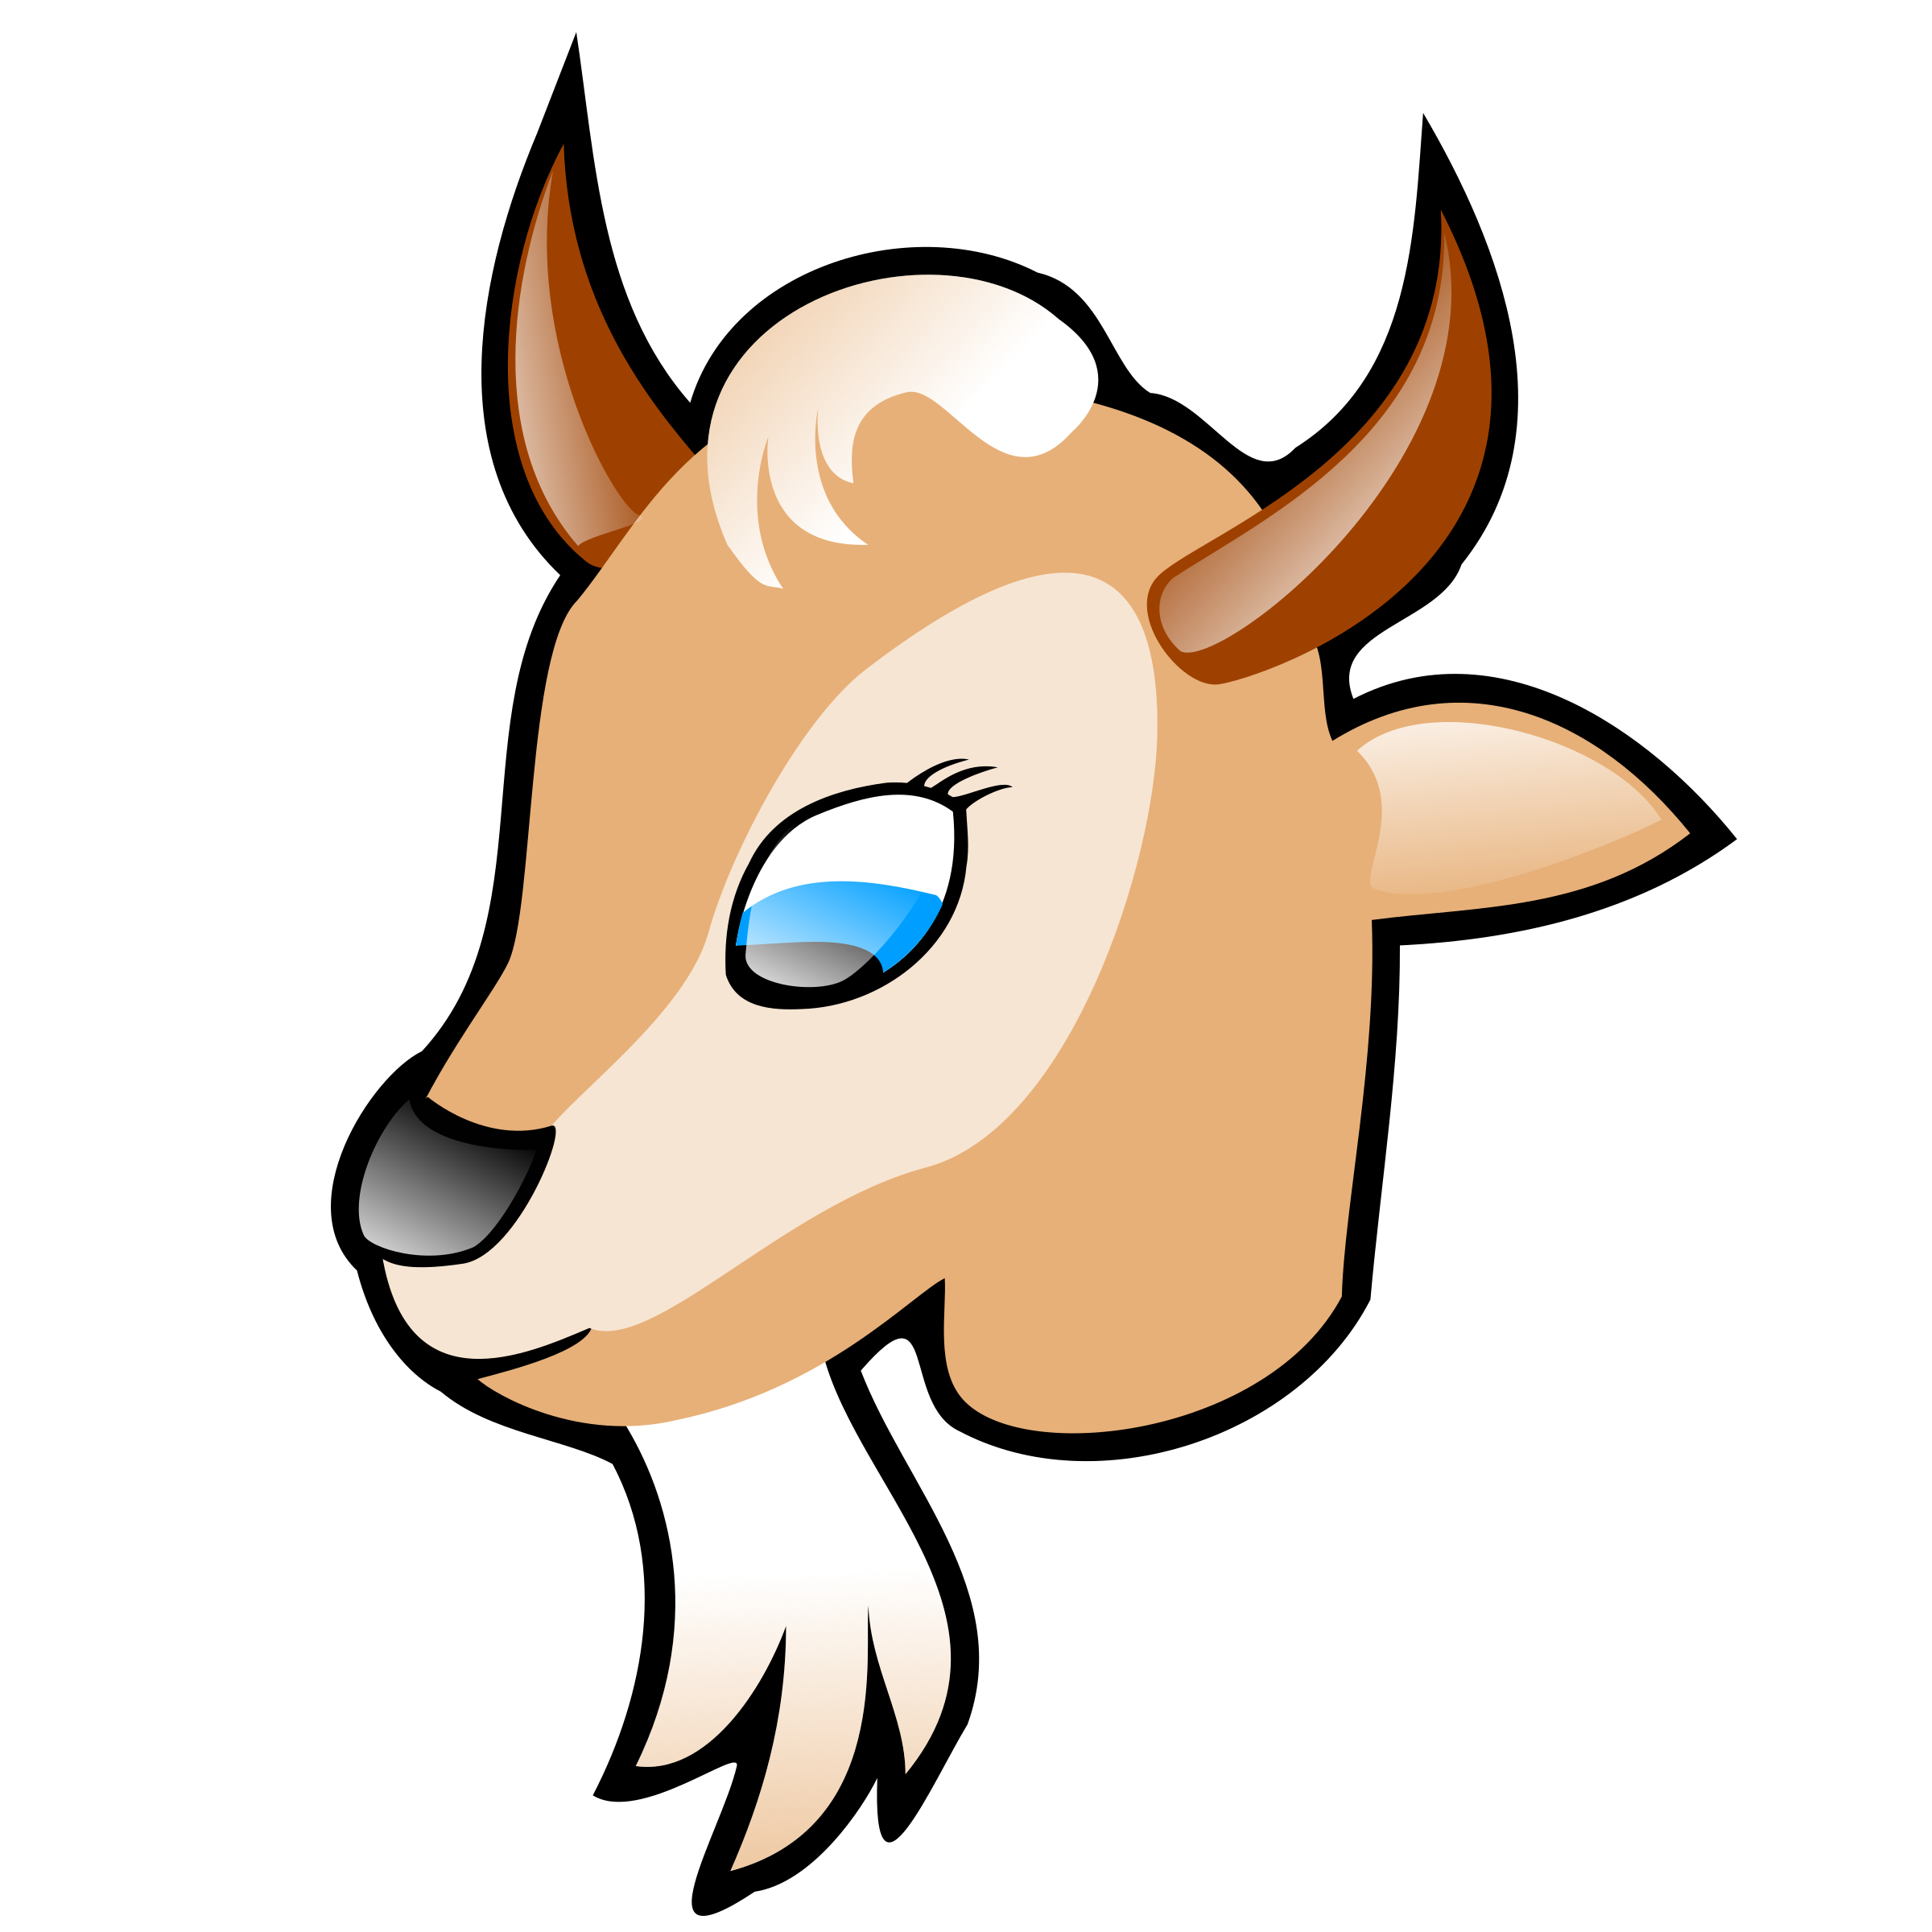 Goat head big image. Horn clipart yellow